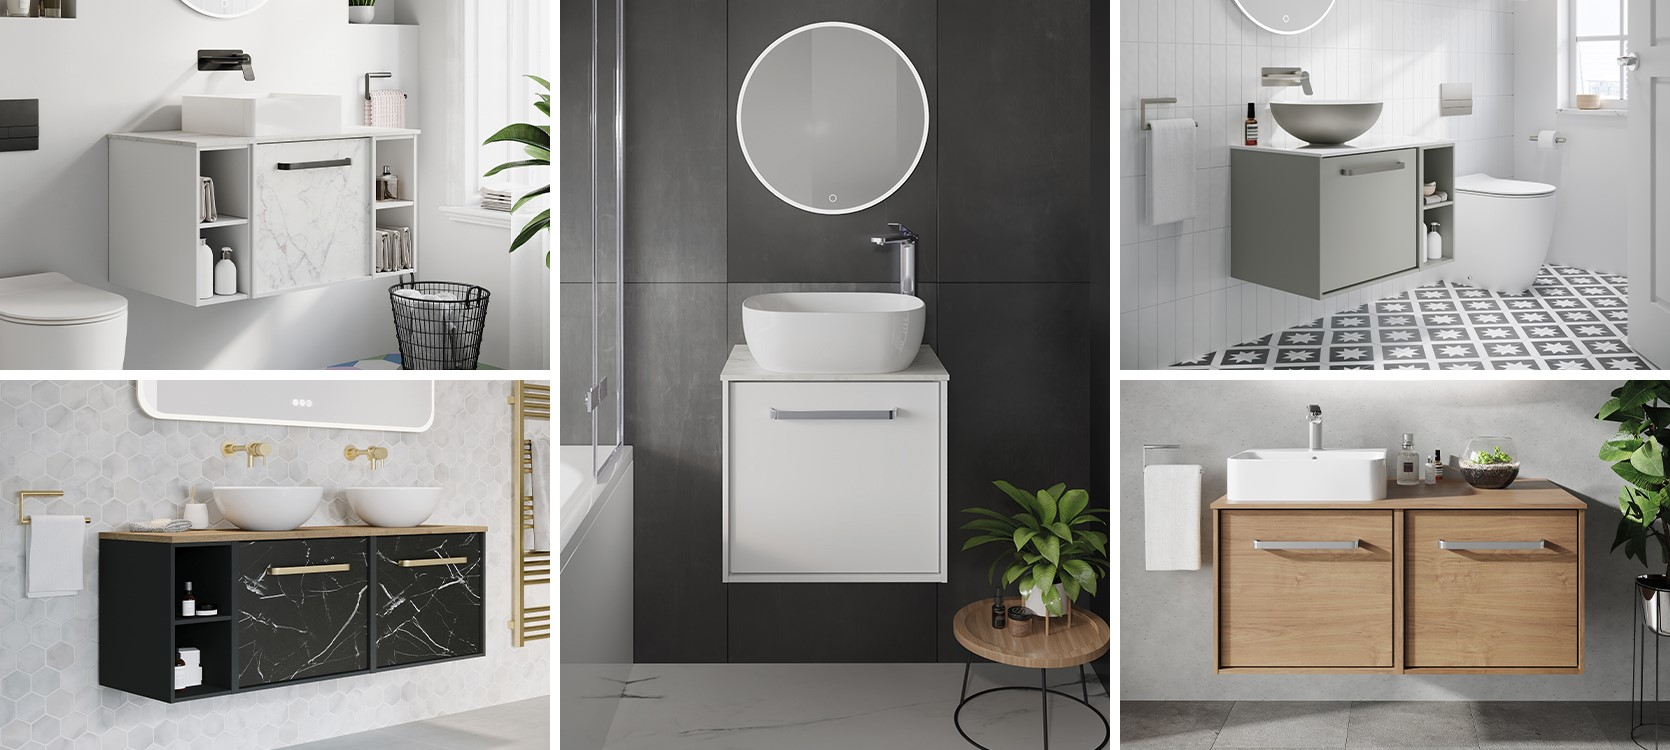 Contemporary bathroom furniture   Discover a luxury bathroom layout with the Infinity collection